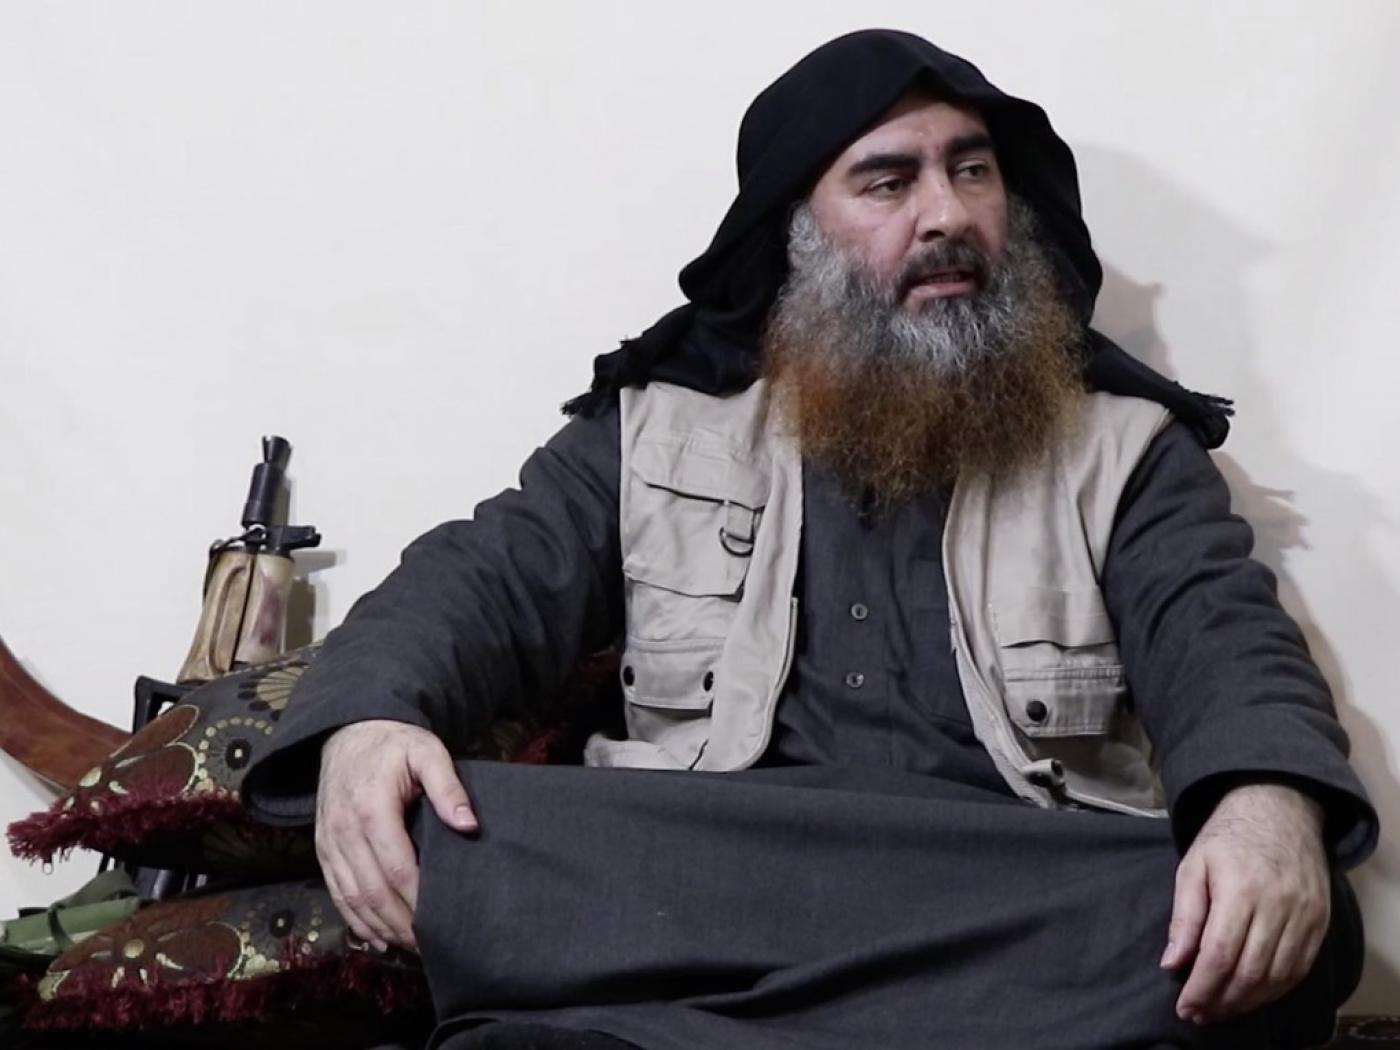 ISIS Leader Apparently Releases Video For First Time In 5 Years